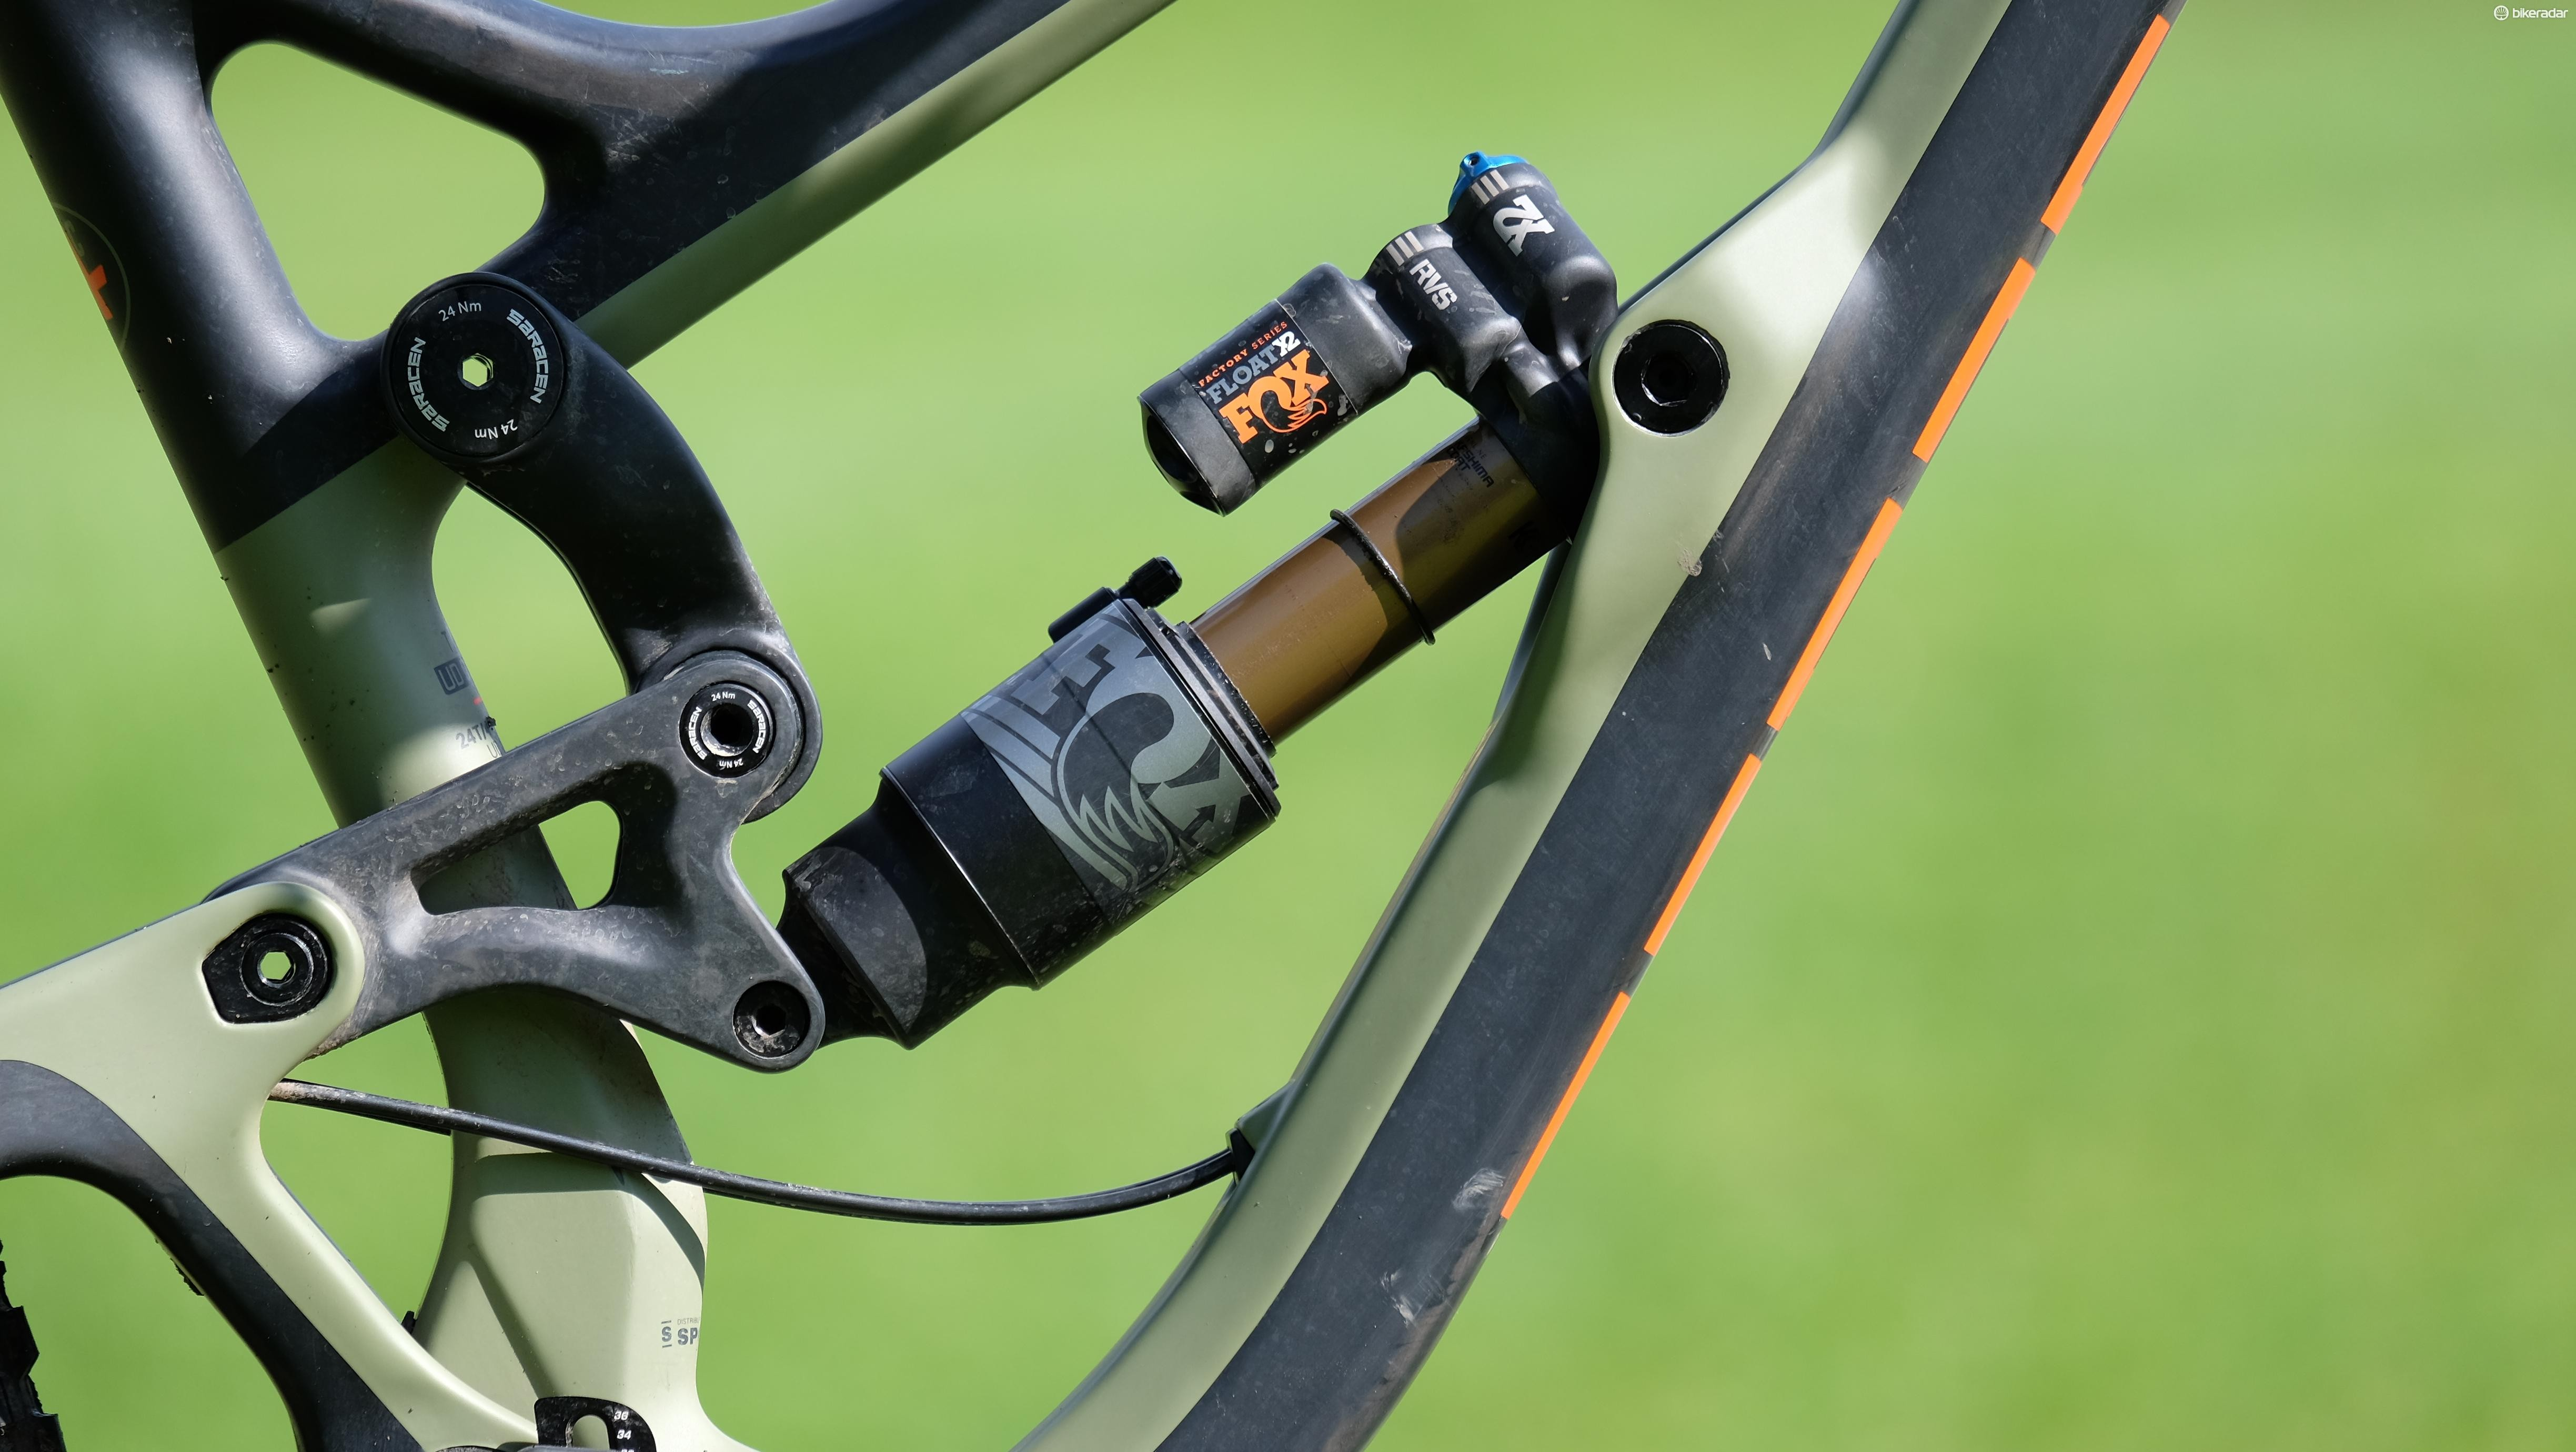 The Ariel uses the same suspension design as the brand's Myst downhill bike, but the carbon links have been tweaked to alter the leverage ratio slightly